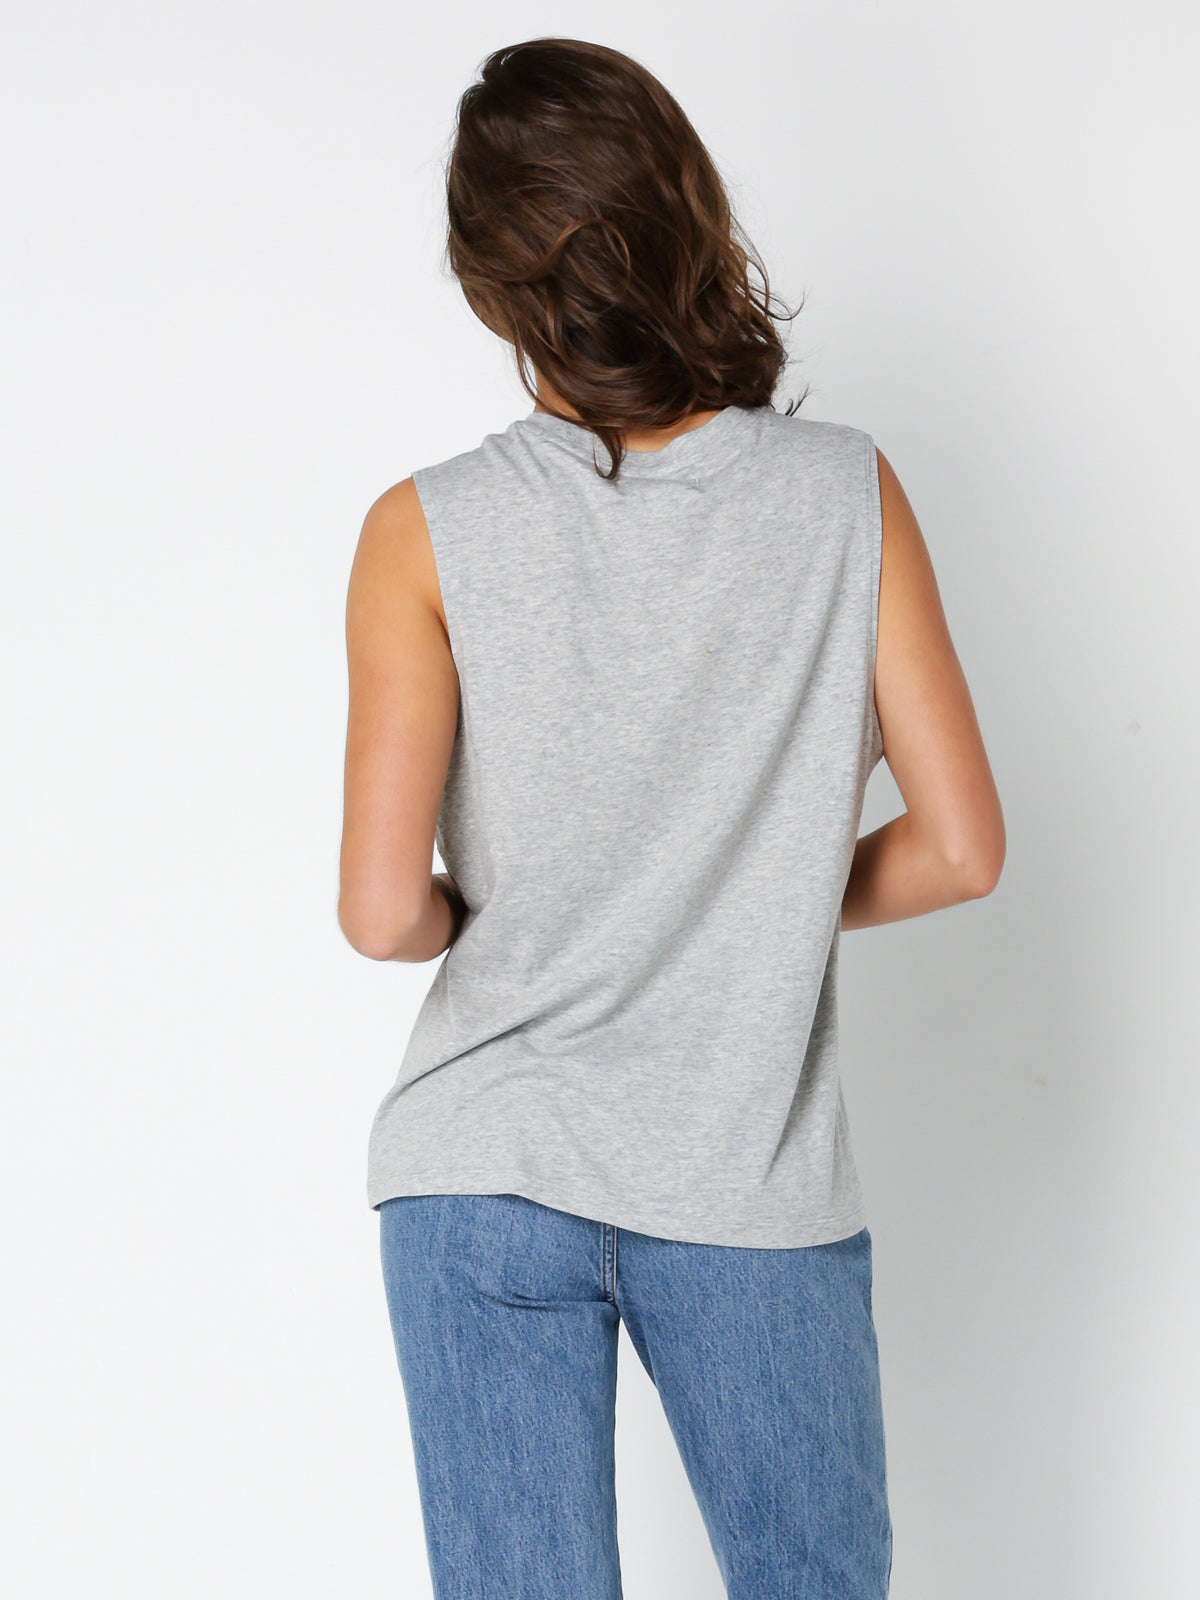 Kiera Basic Muscle Tank in Grey Marle